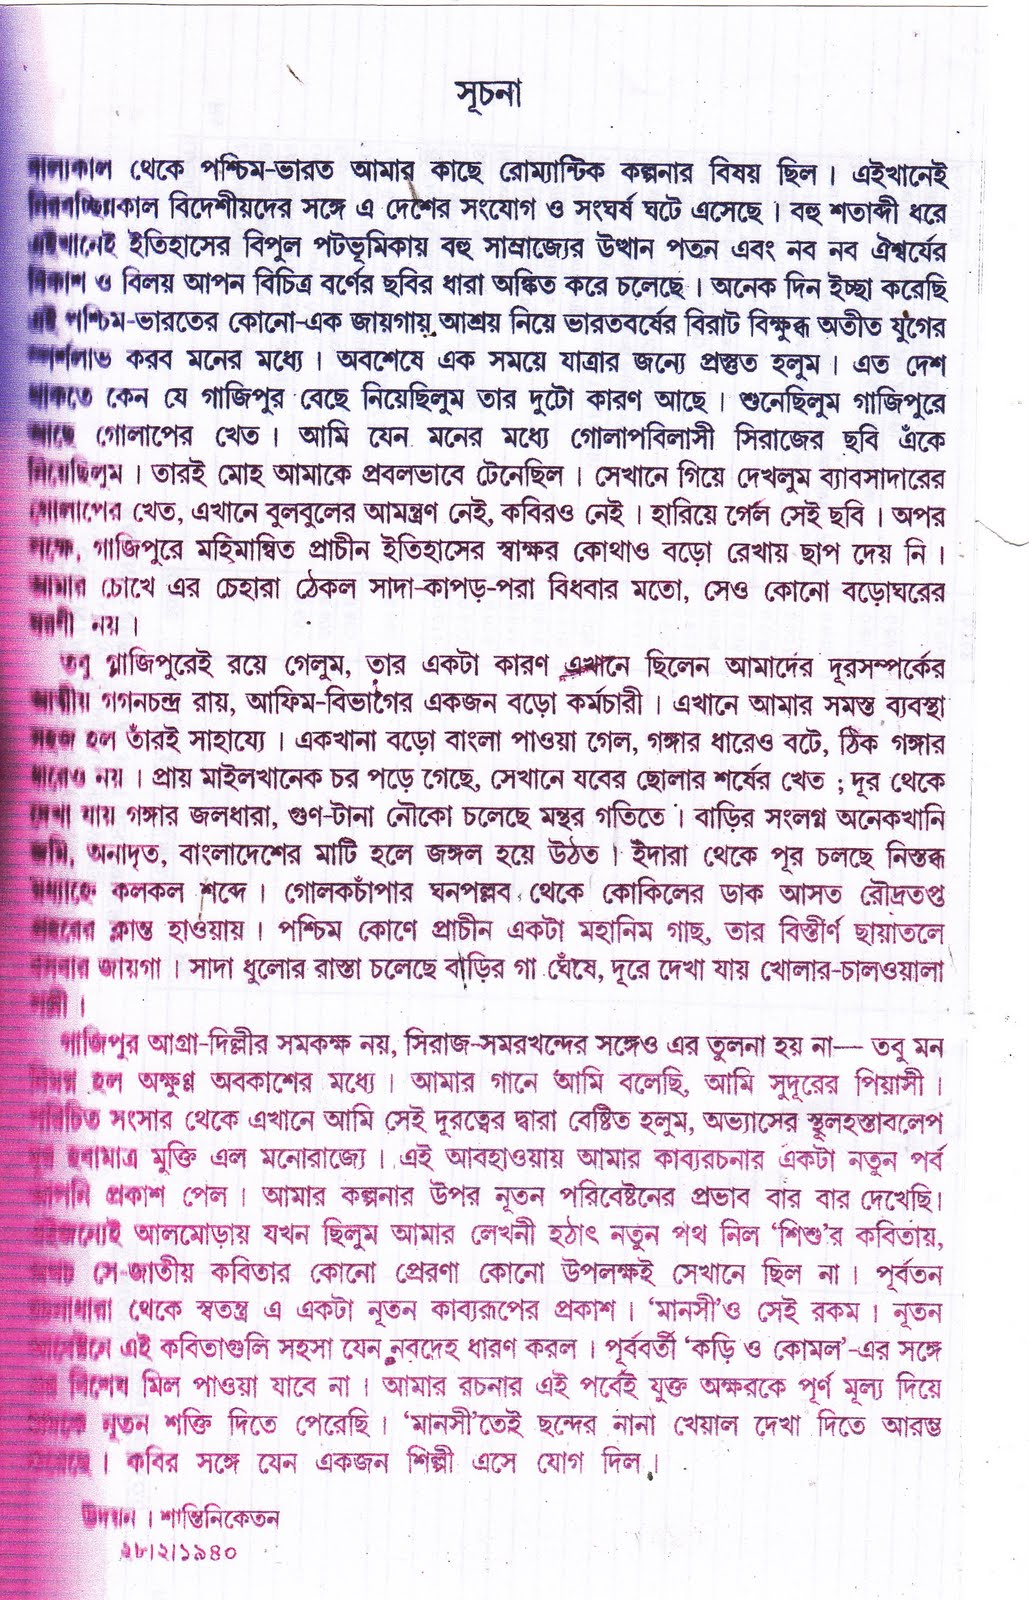 History Of The Internet Essay In A Handwritten Magazine Namely Paribarik Smriti Rabindranath Wrote  Many Essays His Son Rathindranath Was Born In This Year  Th Nov Topics For Illustration Essays also How To Write A High School Application Essay Smaraka Grantha Gazipur Rabindranath Argumentative Essays On Technology